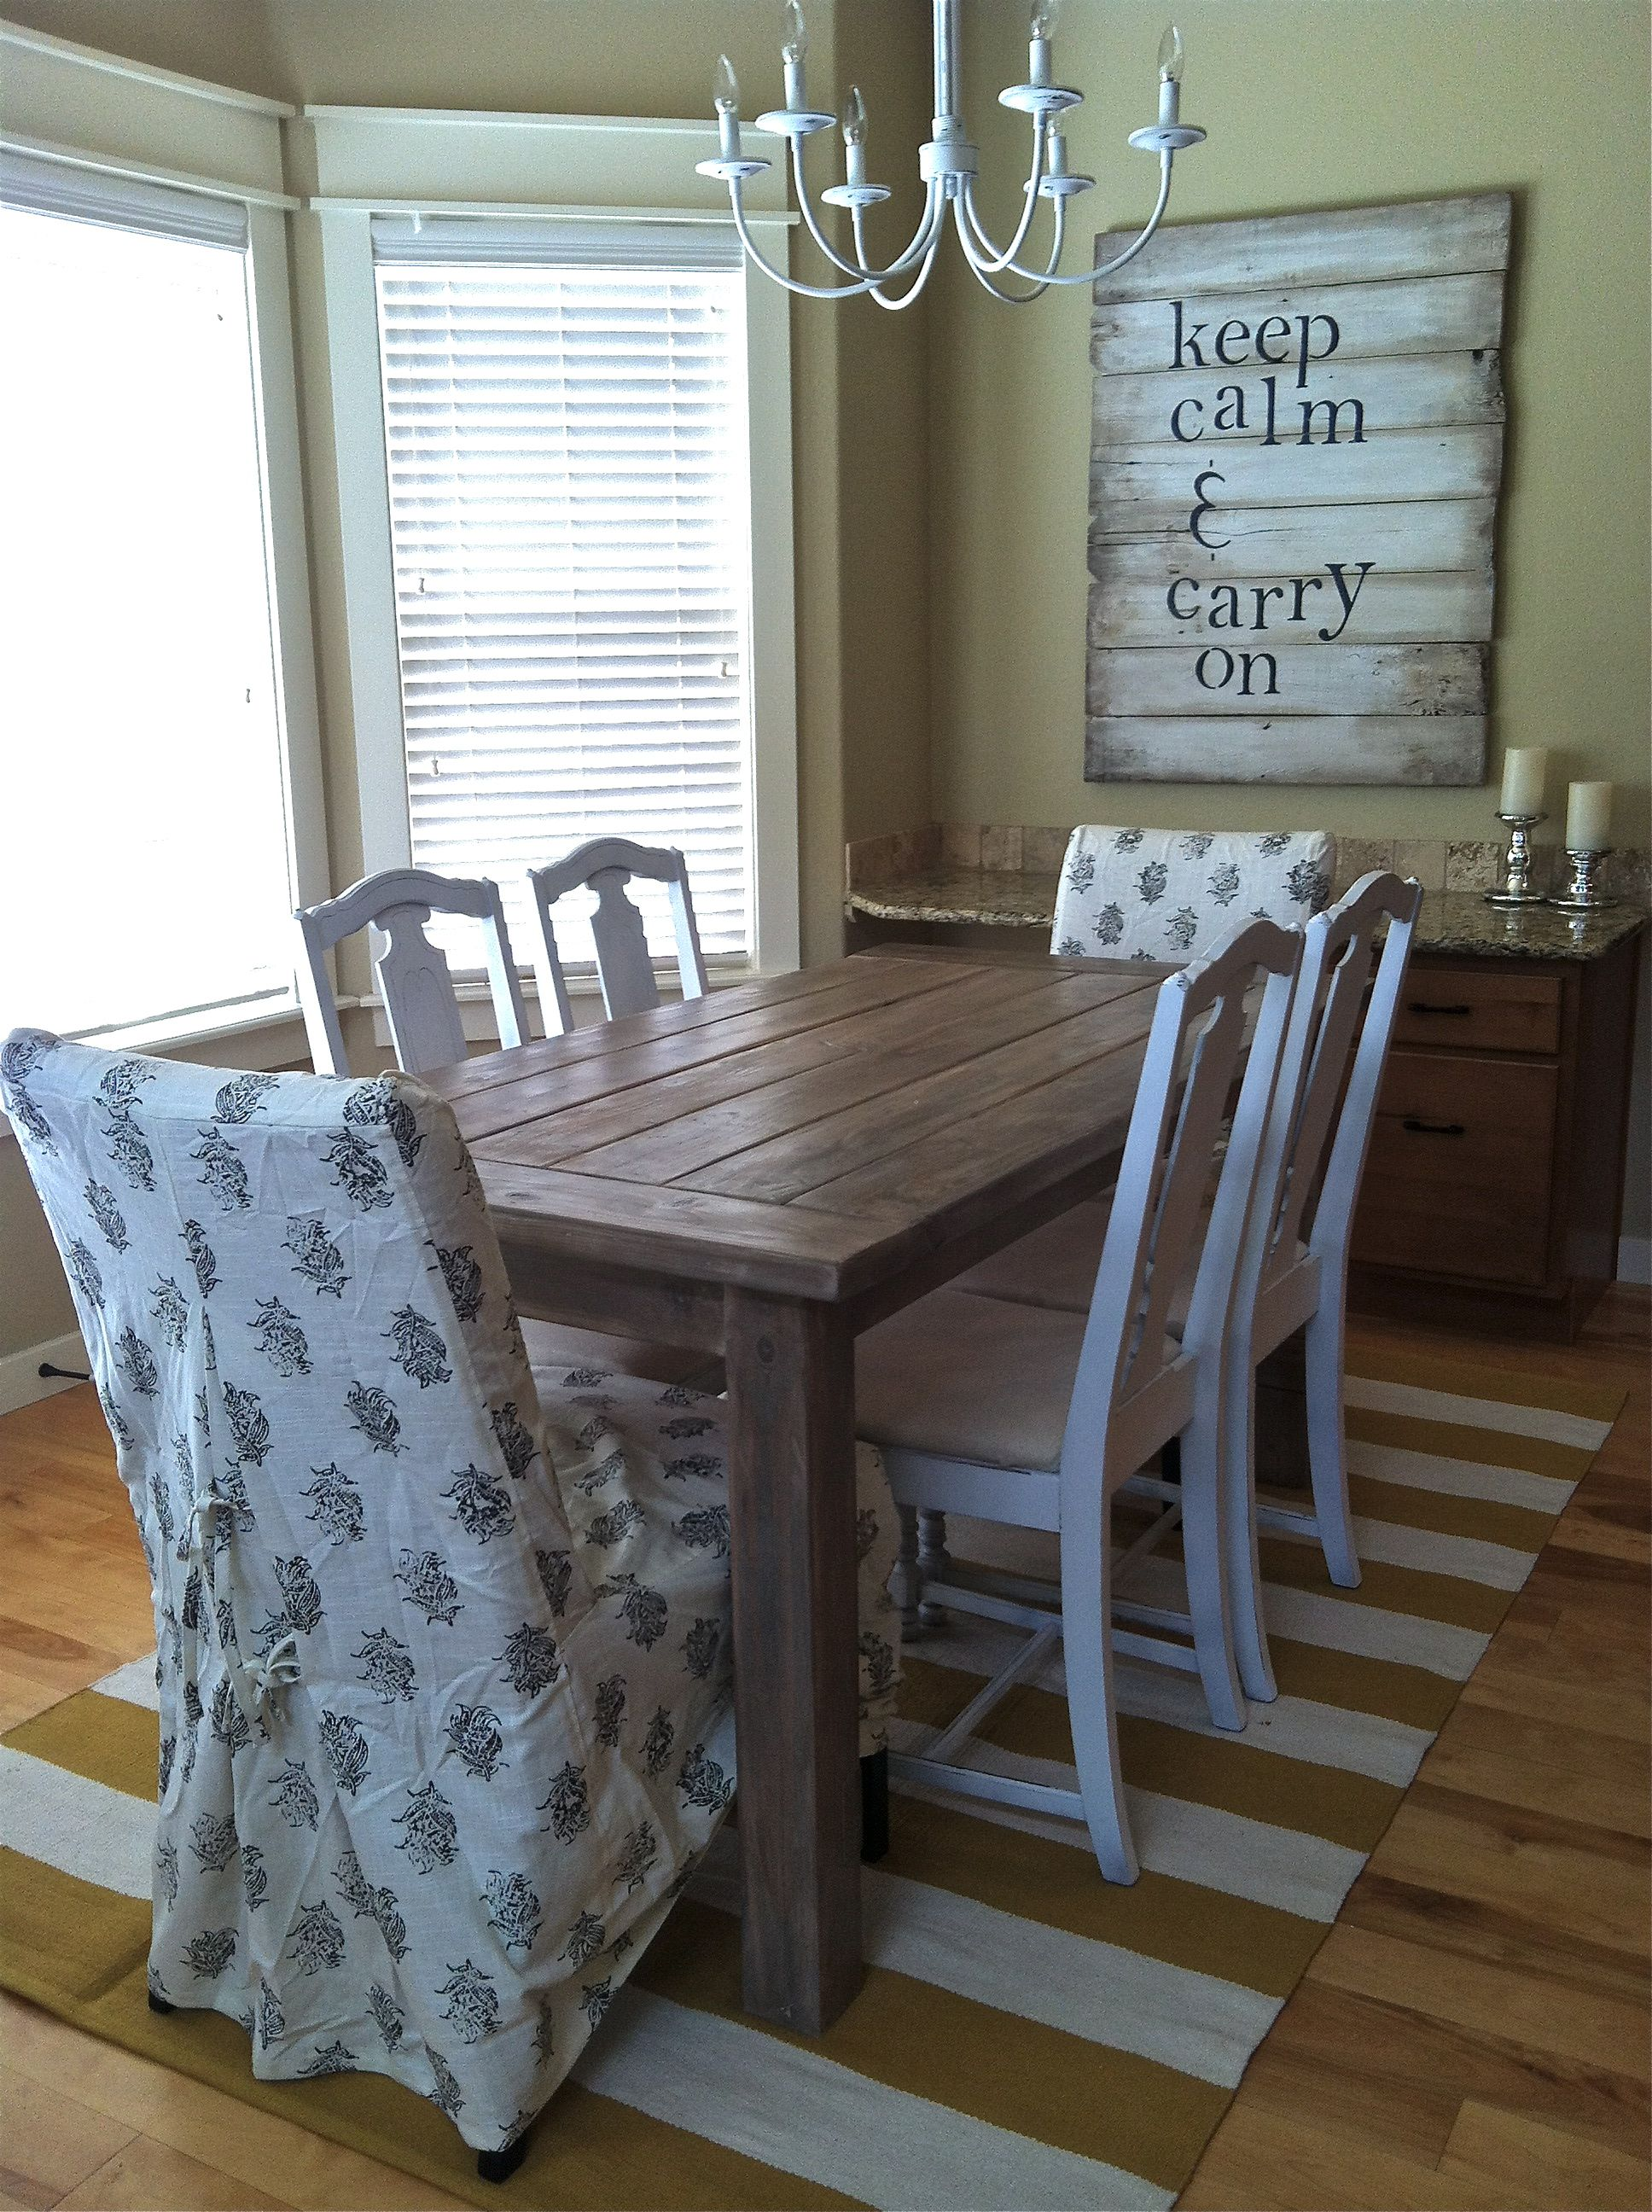 Refurbished Chairs Hand Made Table Old Fence Board Sign Chandelier Update And